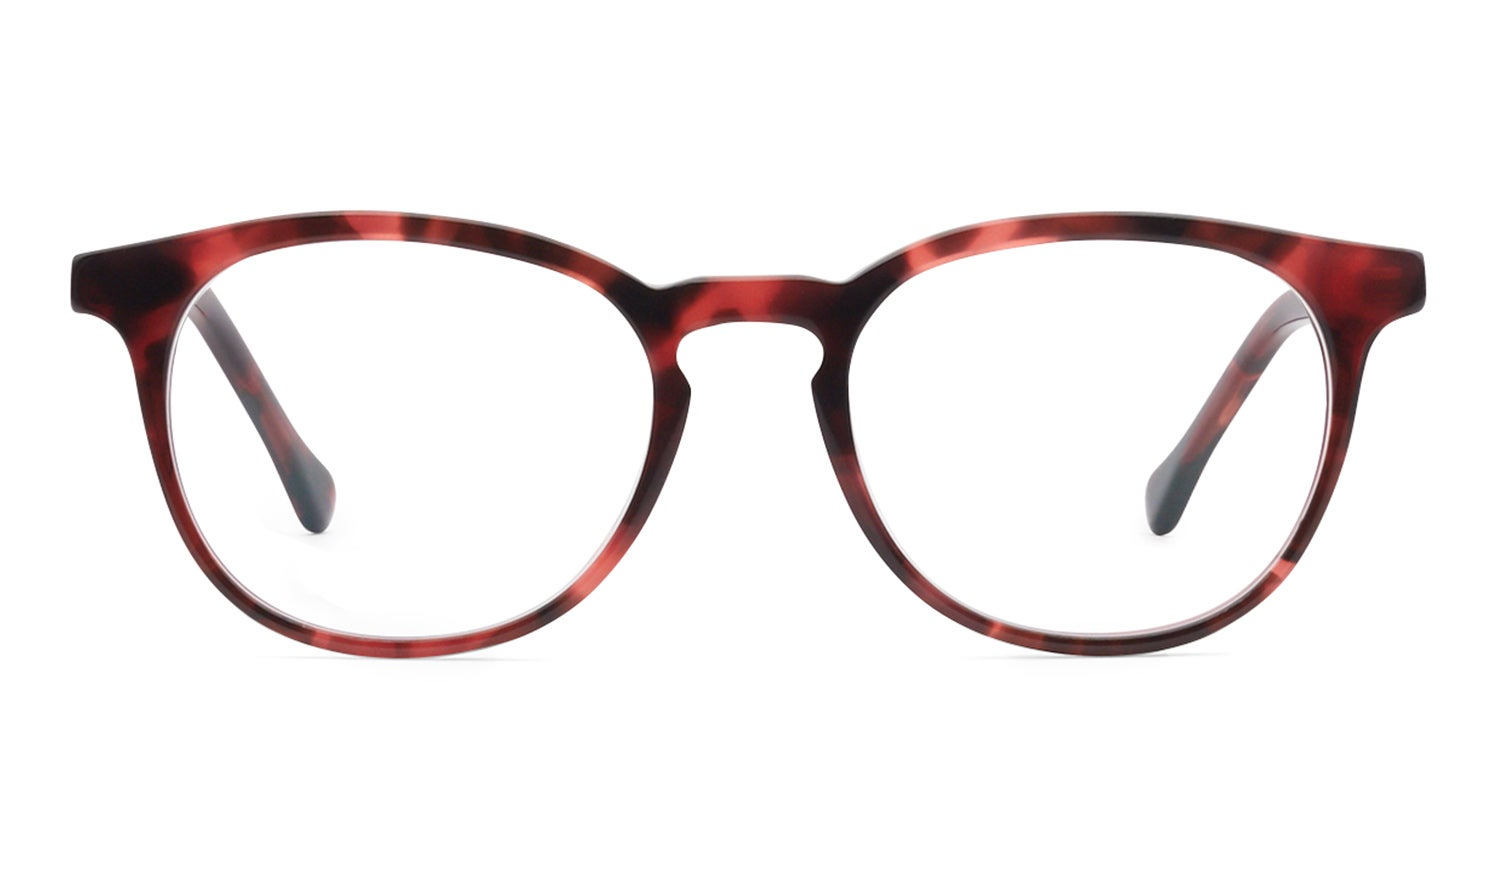 Felix Gray Roebling Glasses in Marbled Malbec